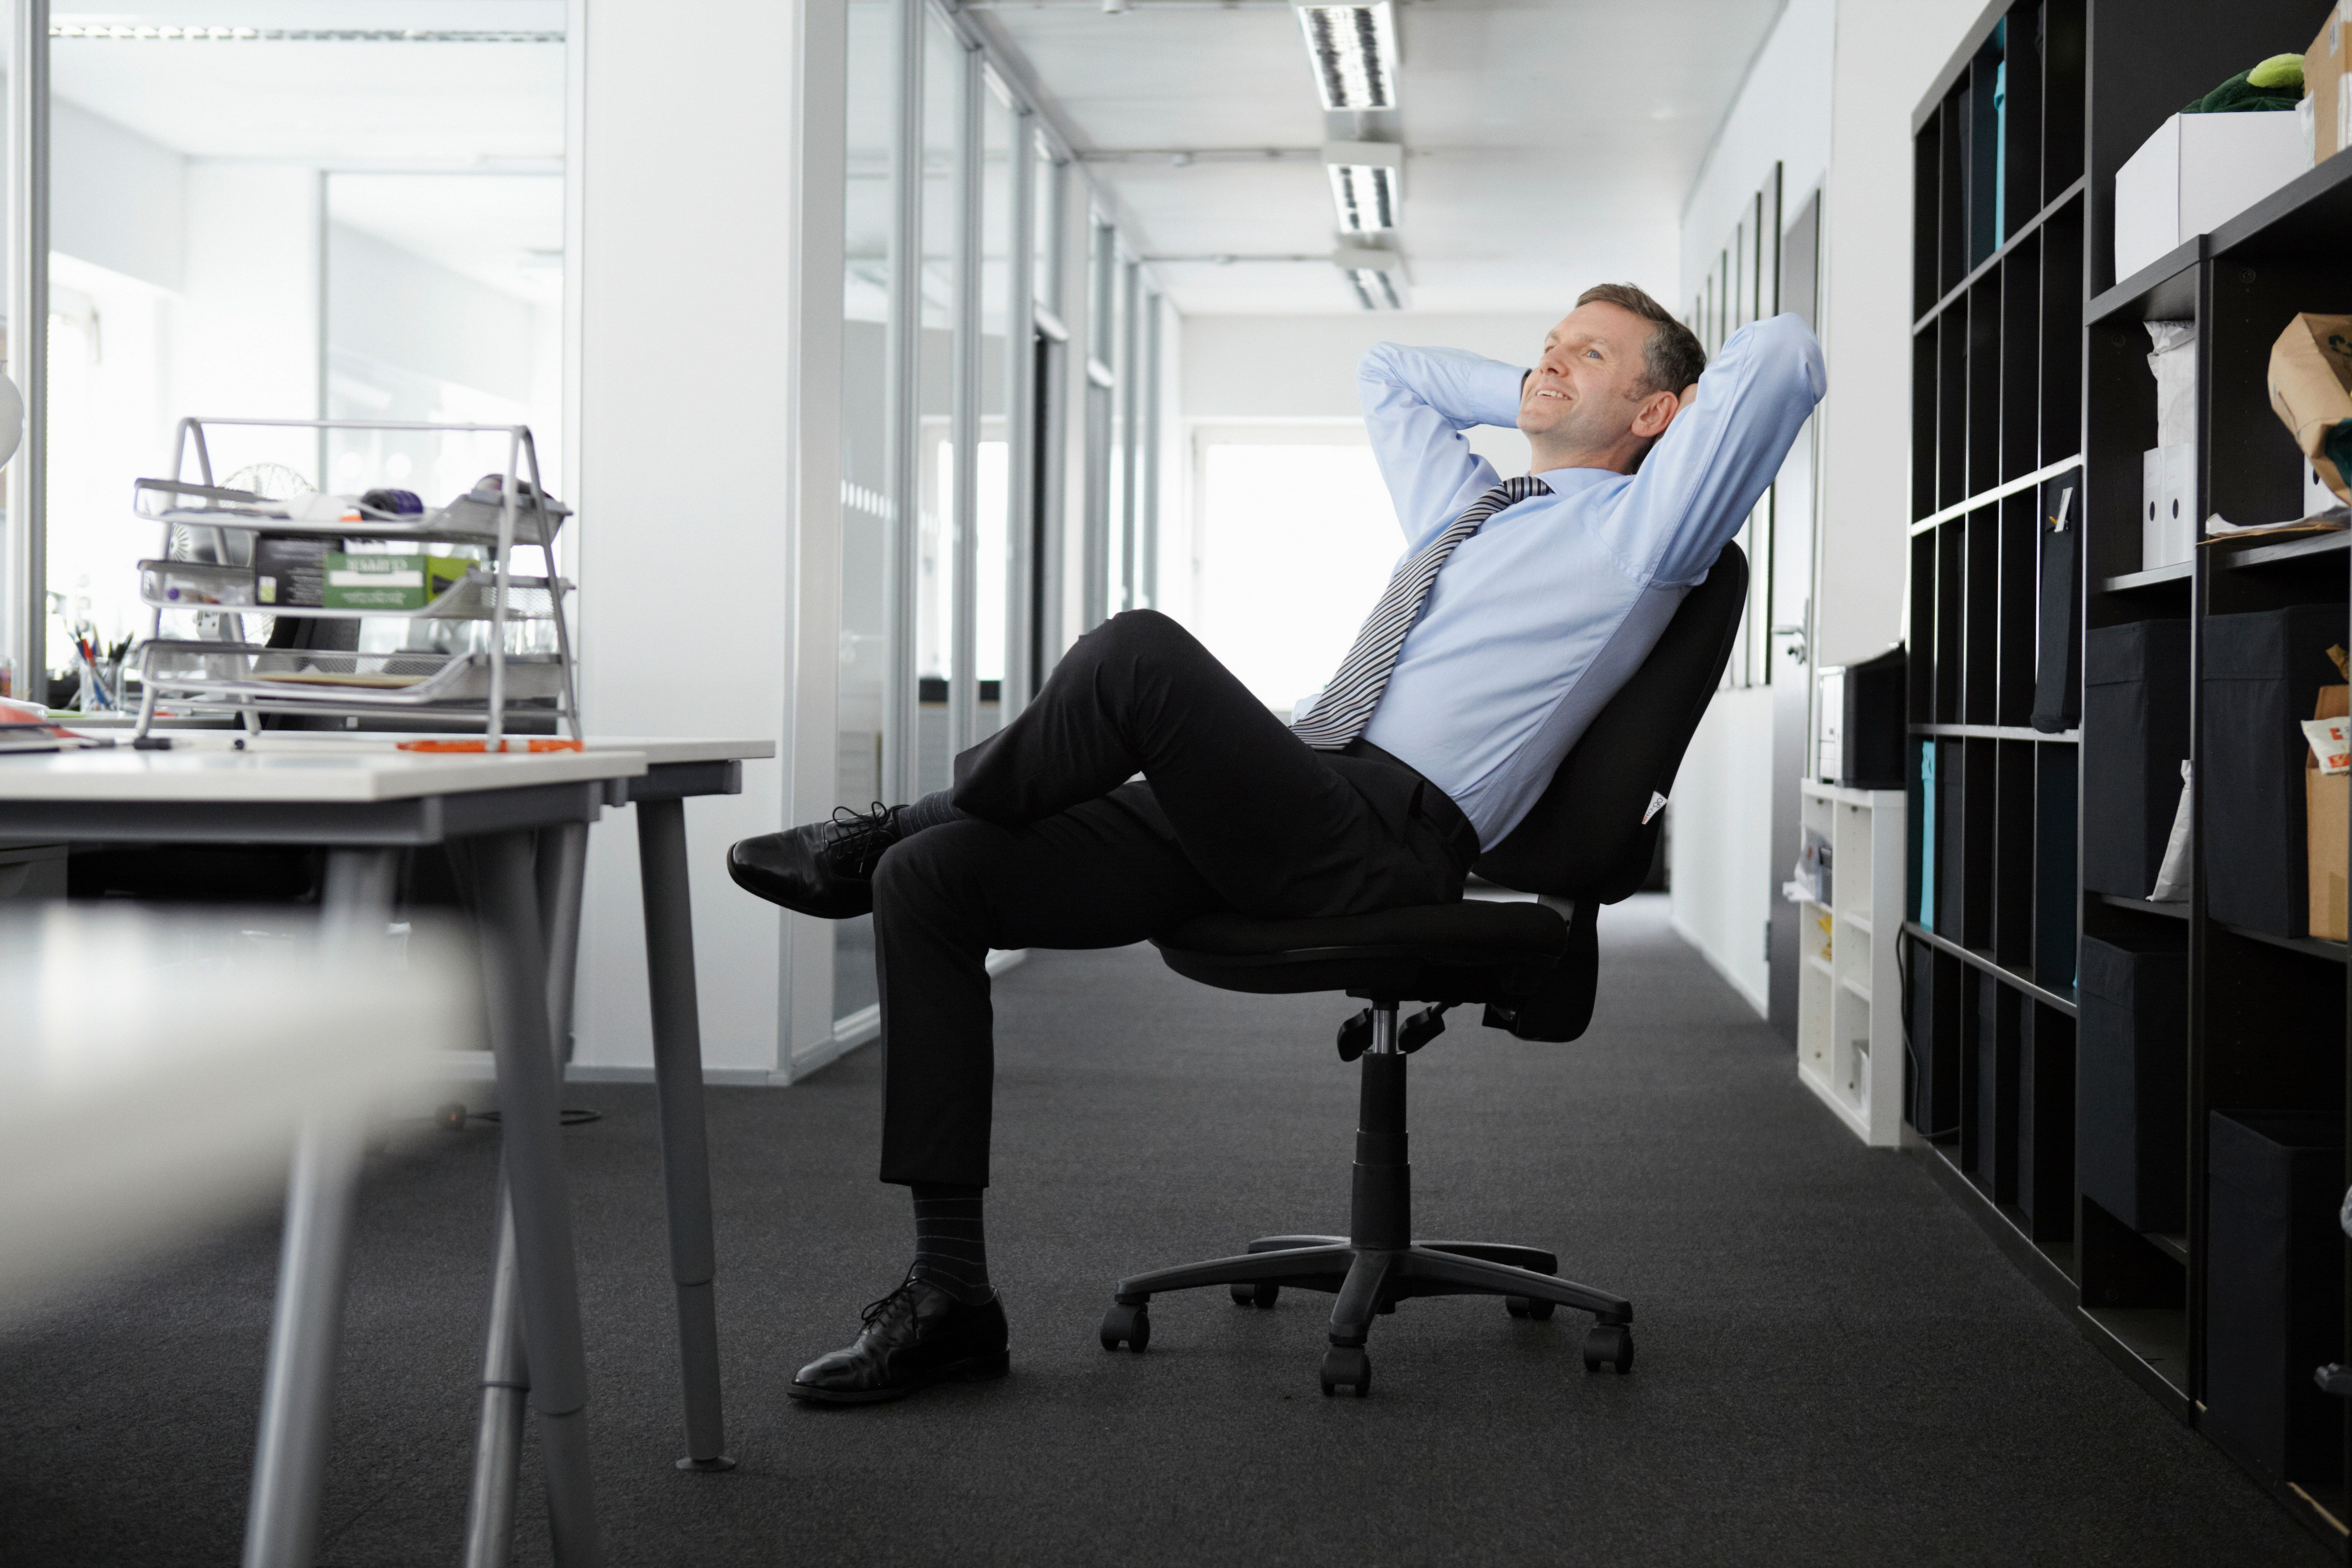 Mature businessman leaning back in an office chair